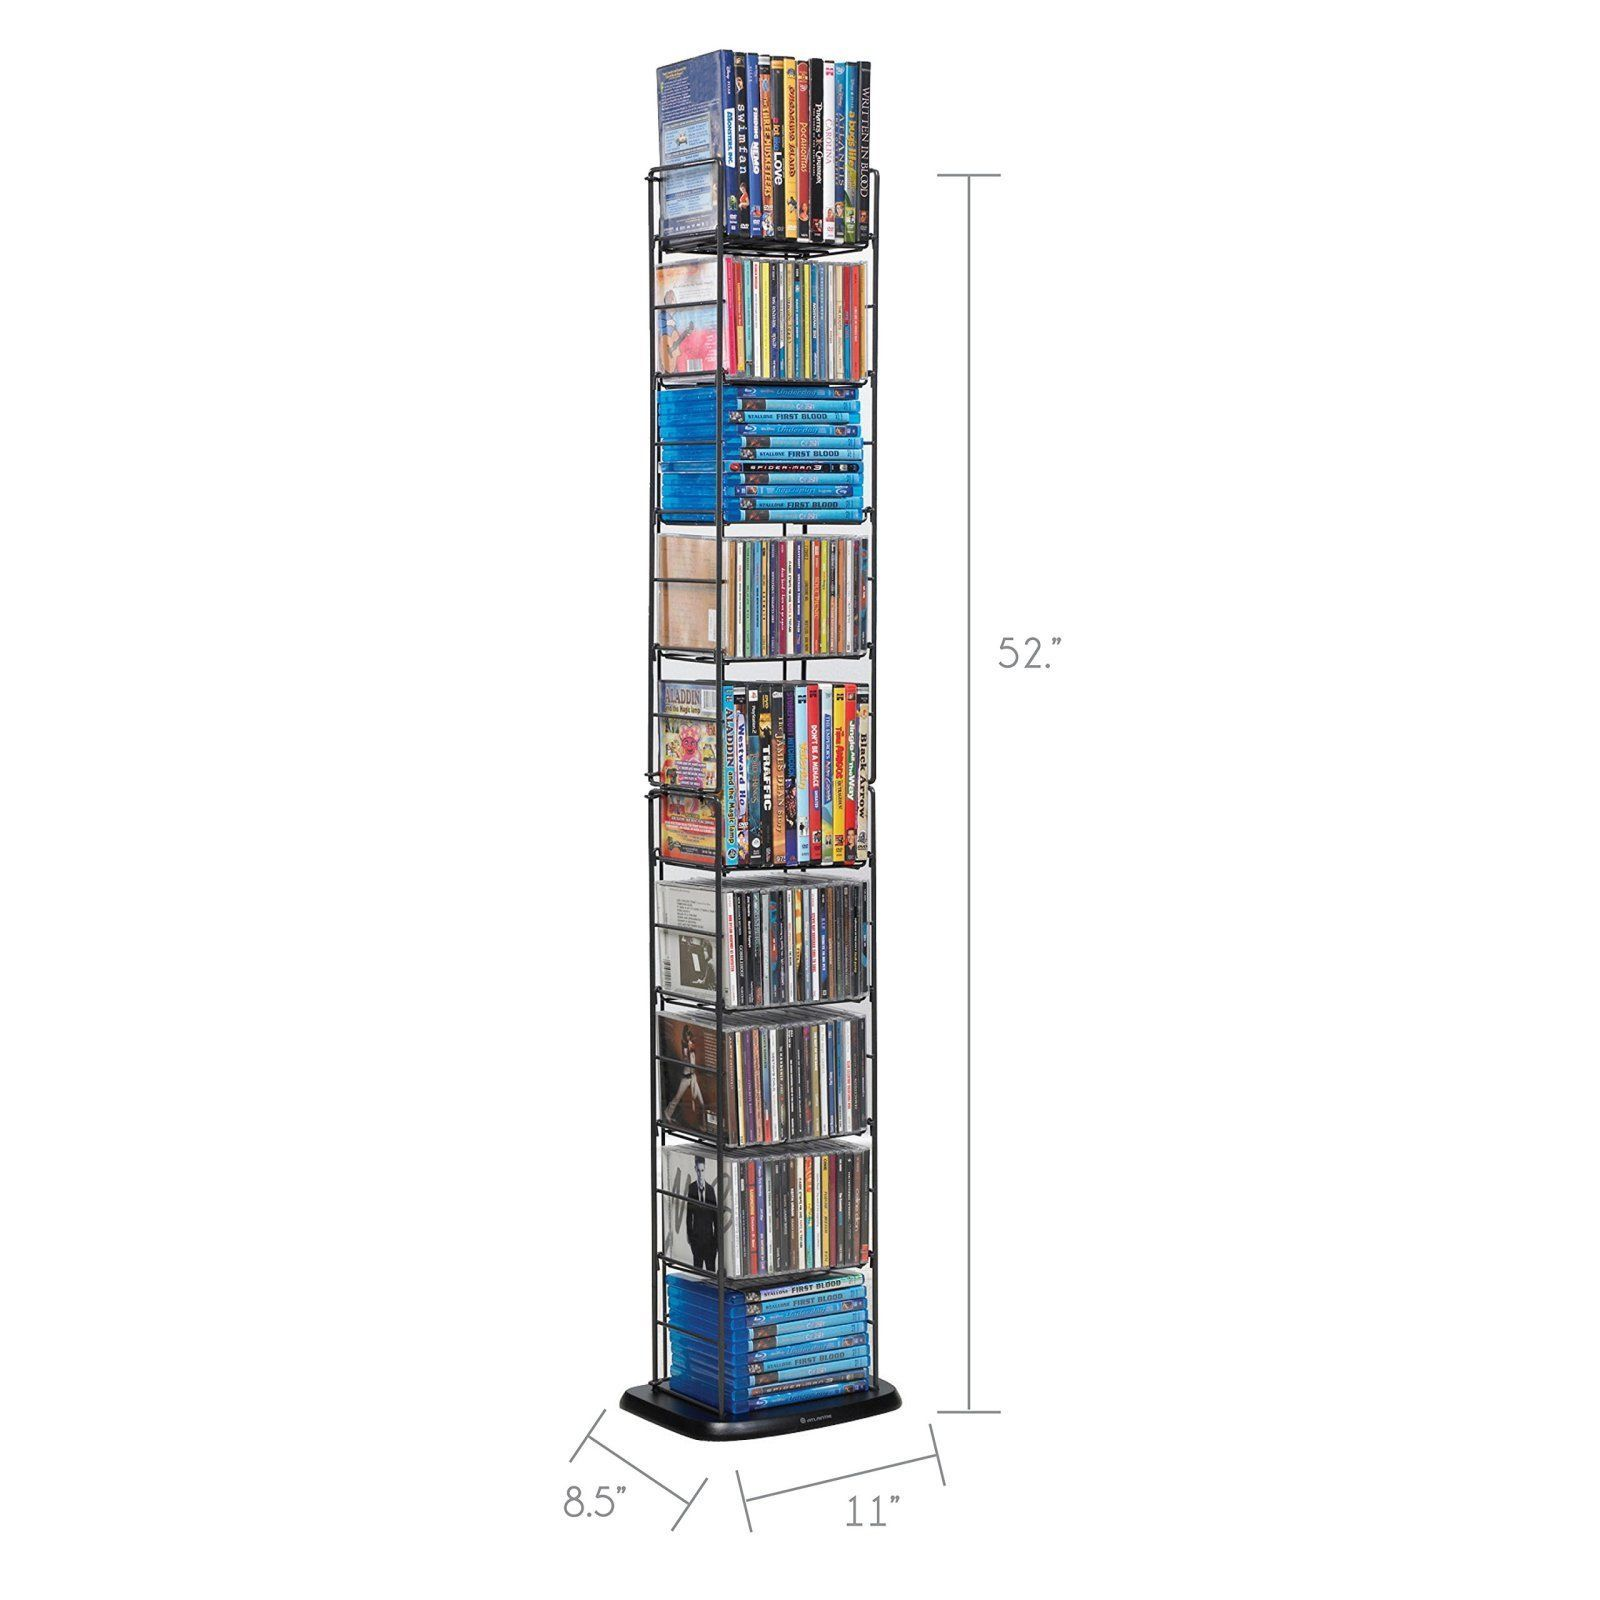 Cds Dvds Discs Rack Multimedia Storage Organizer Furniture Library